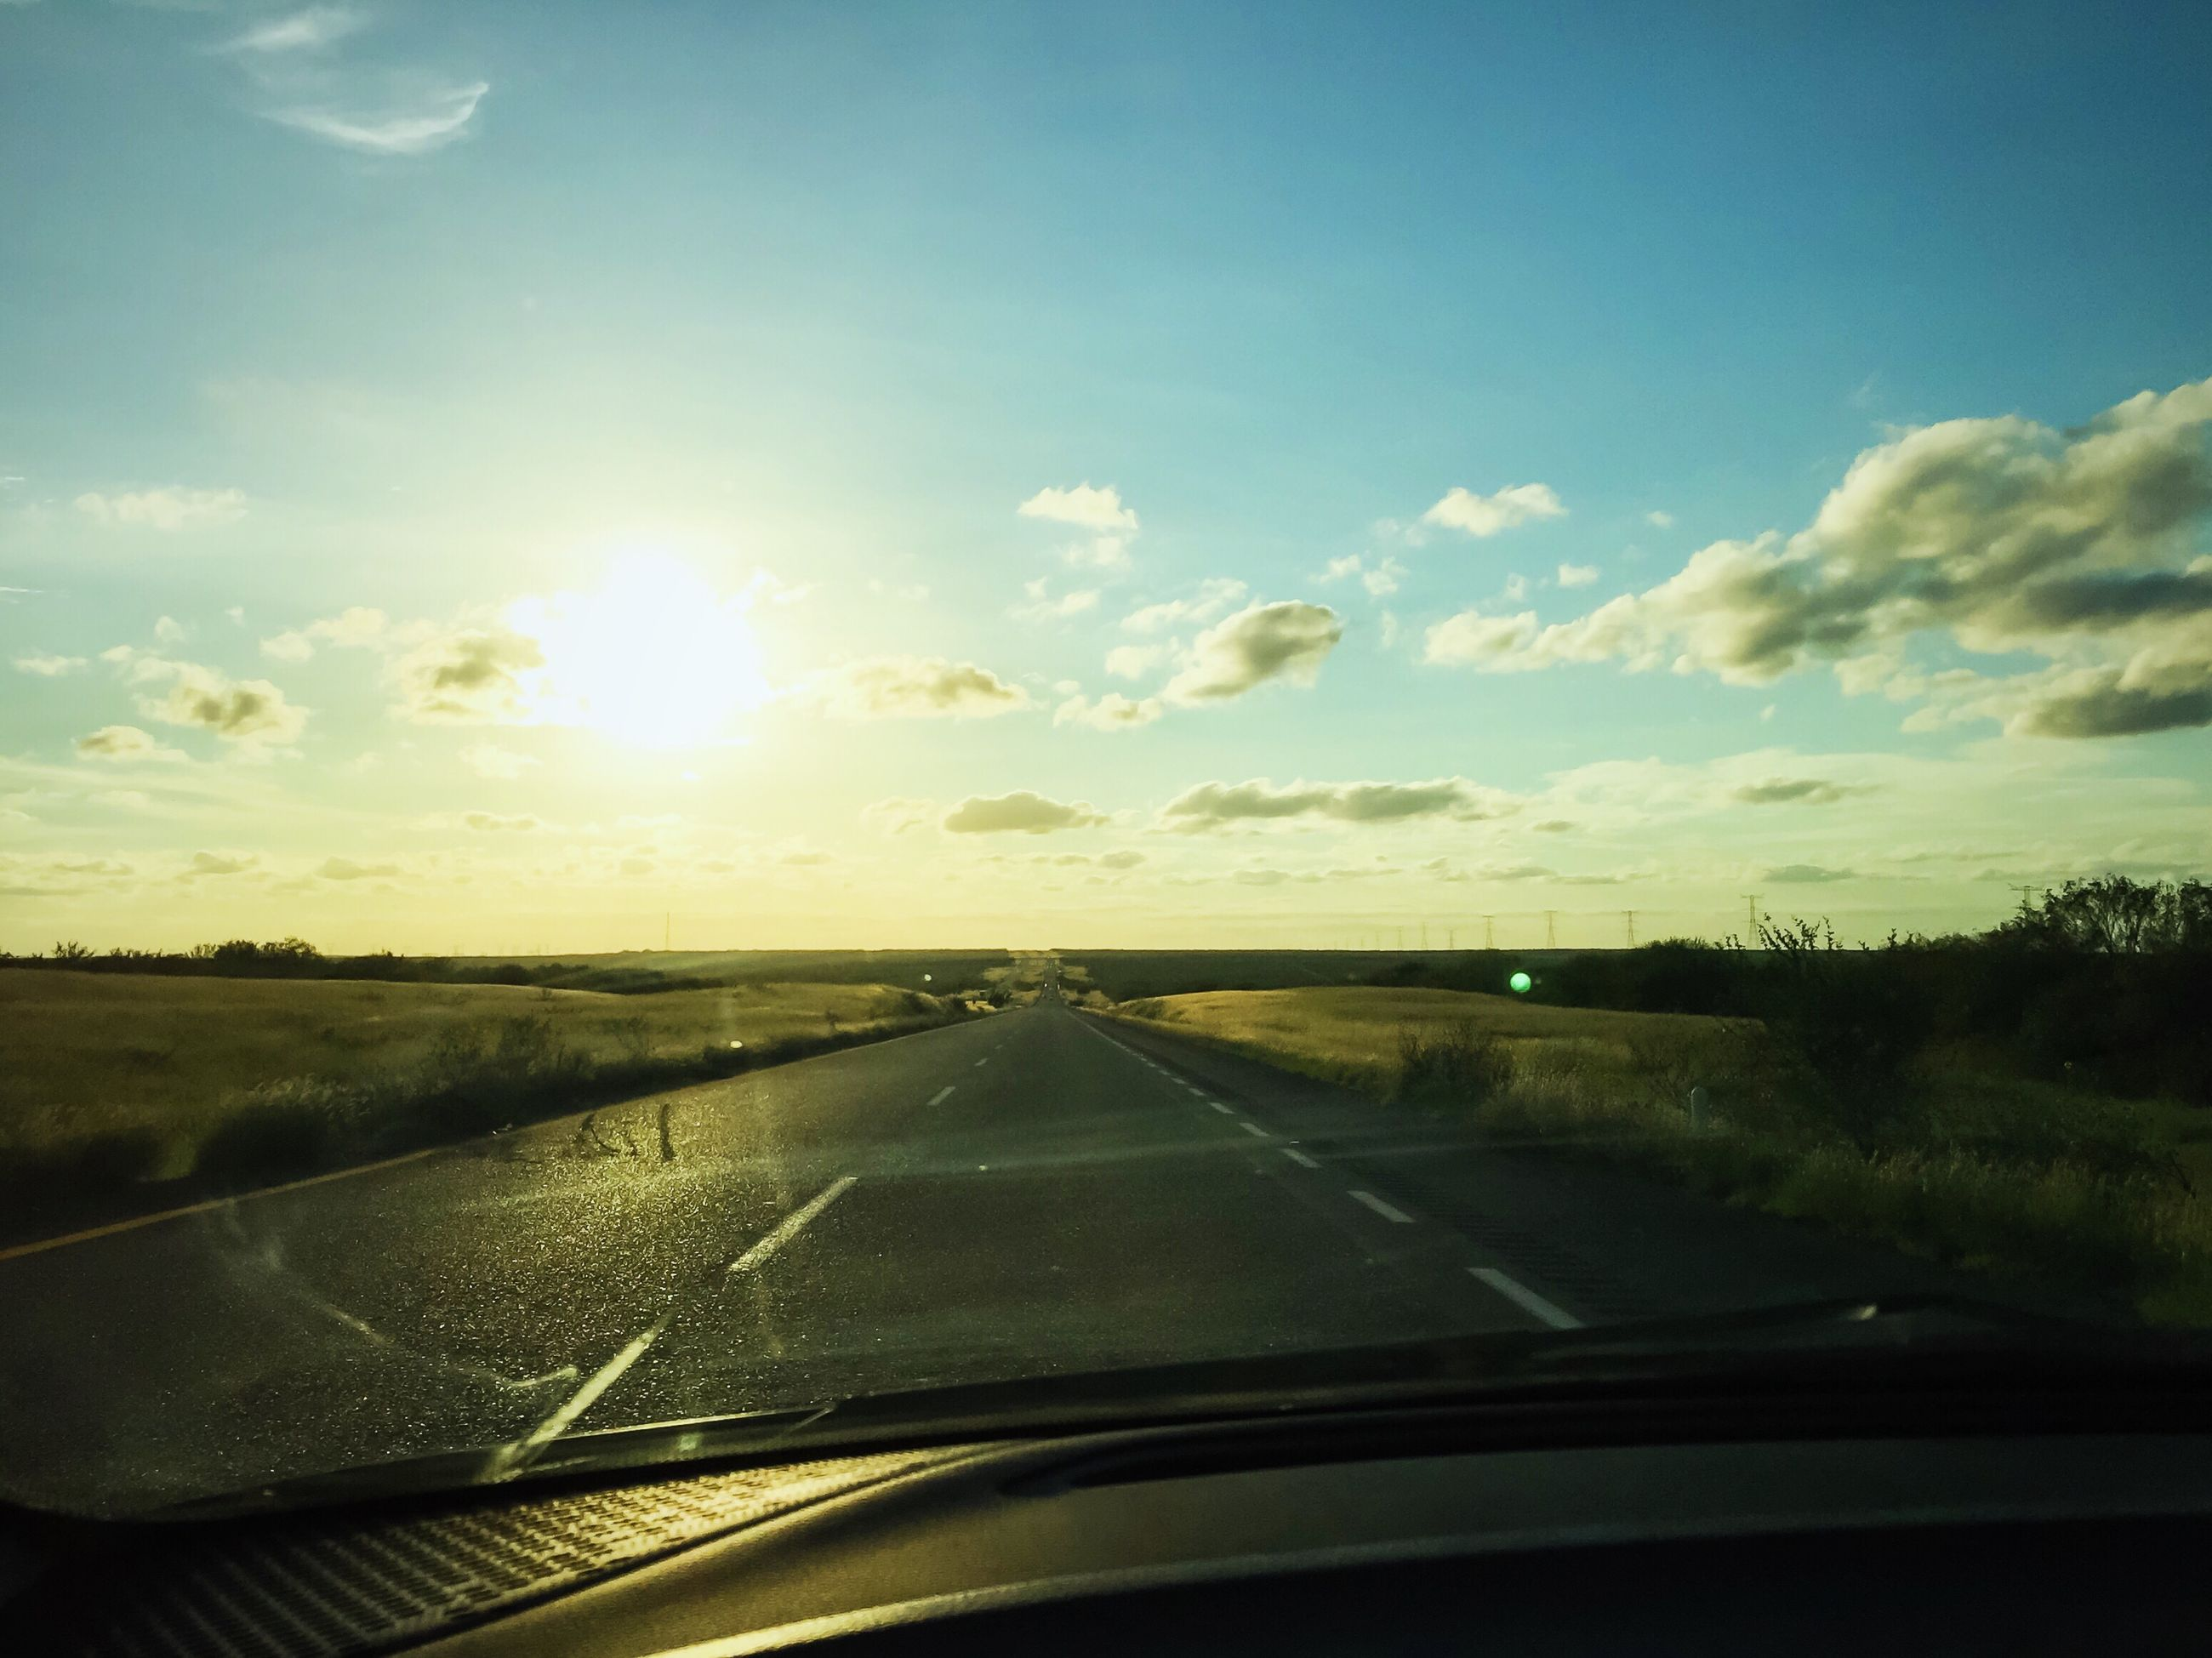 transportation, mode of transport, car, vehicle interior, land vehicle, glass - material, road, sky, windshield, car interior, transparent, landscape, part of, cloud - sky, travel, cropped, window, side-view mirror, nature, tree